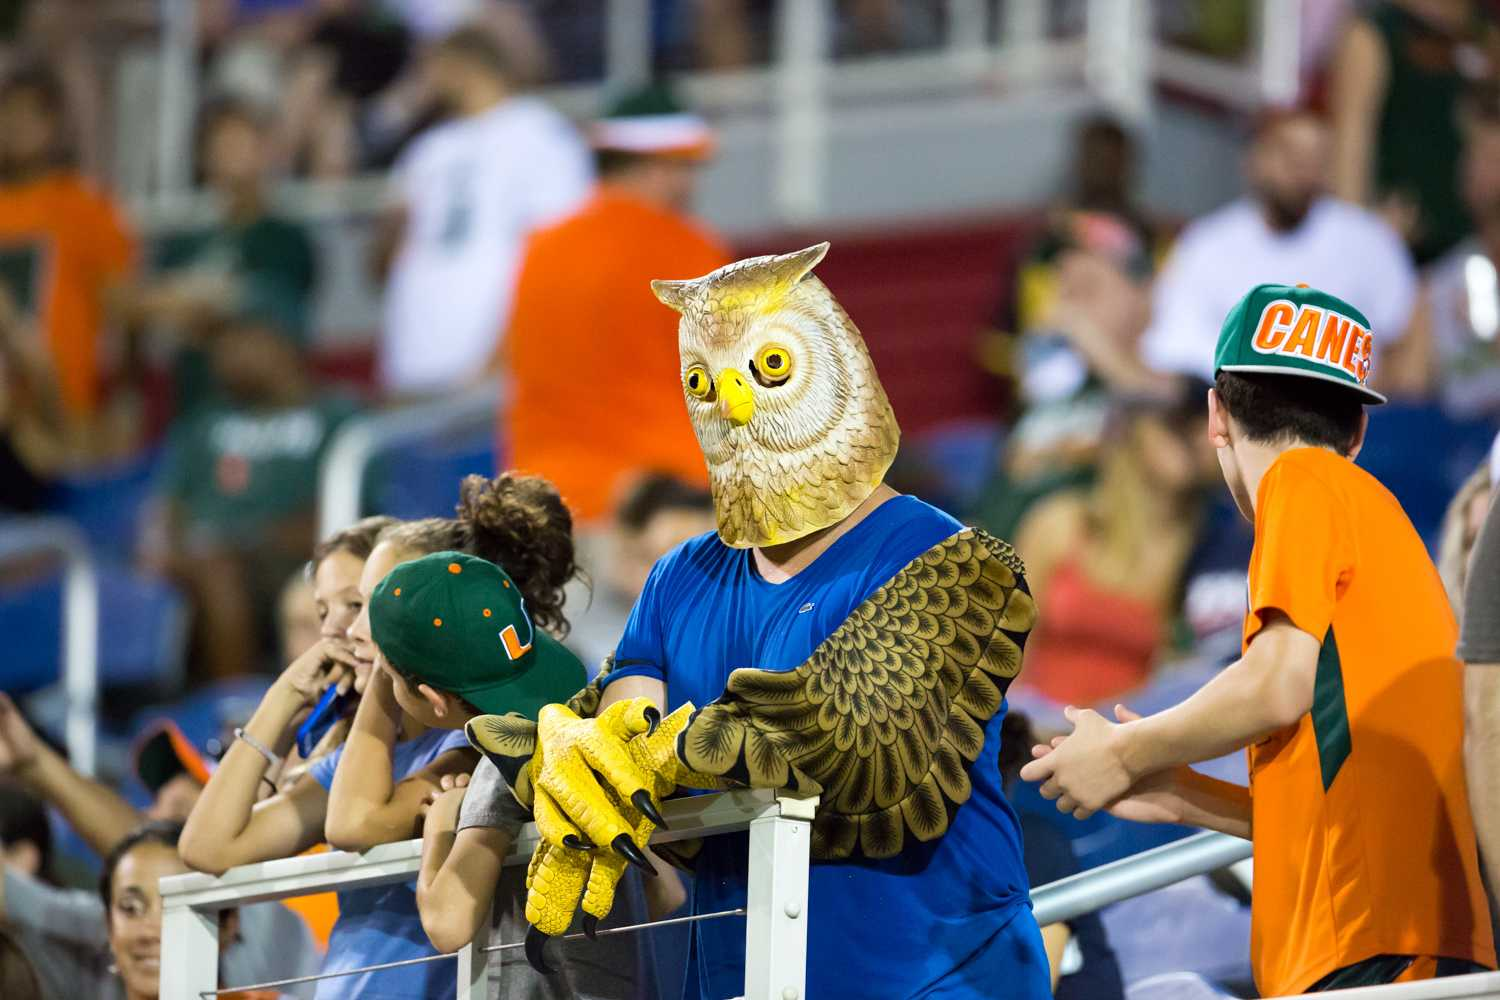 Not letting the weather delay stop them, an Owls fan stands his ground while surrounded by Hurricane fans during the UM-FAU game Friday night. Brandon Harrington | Contributing Photographer